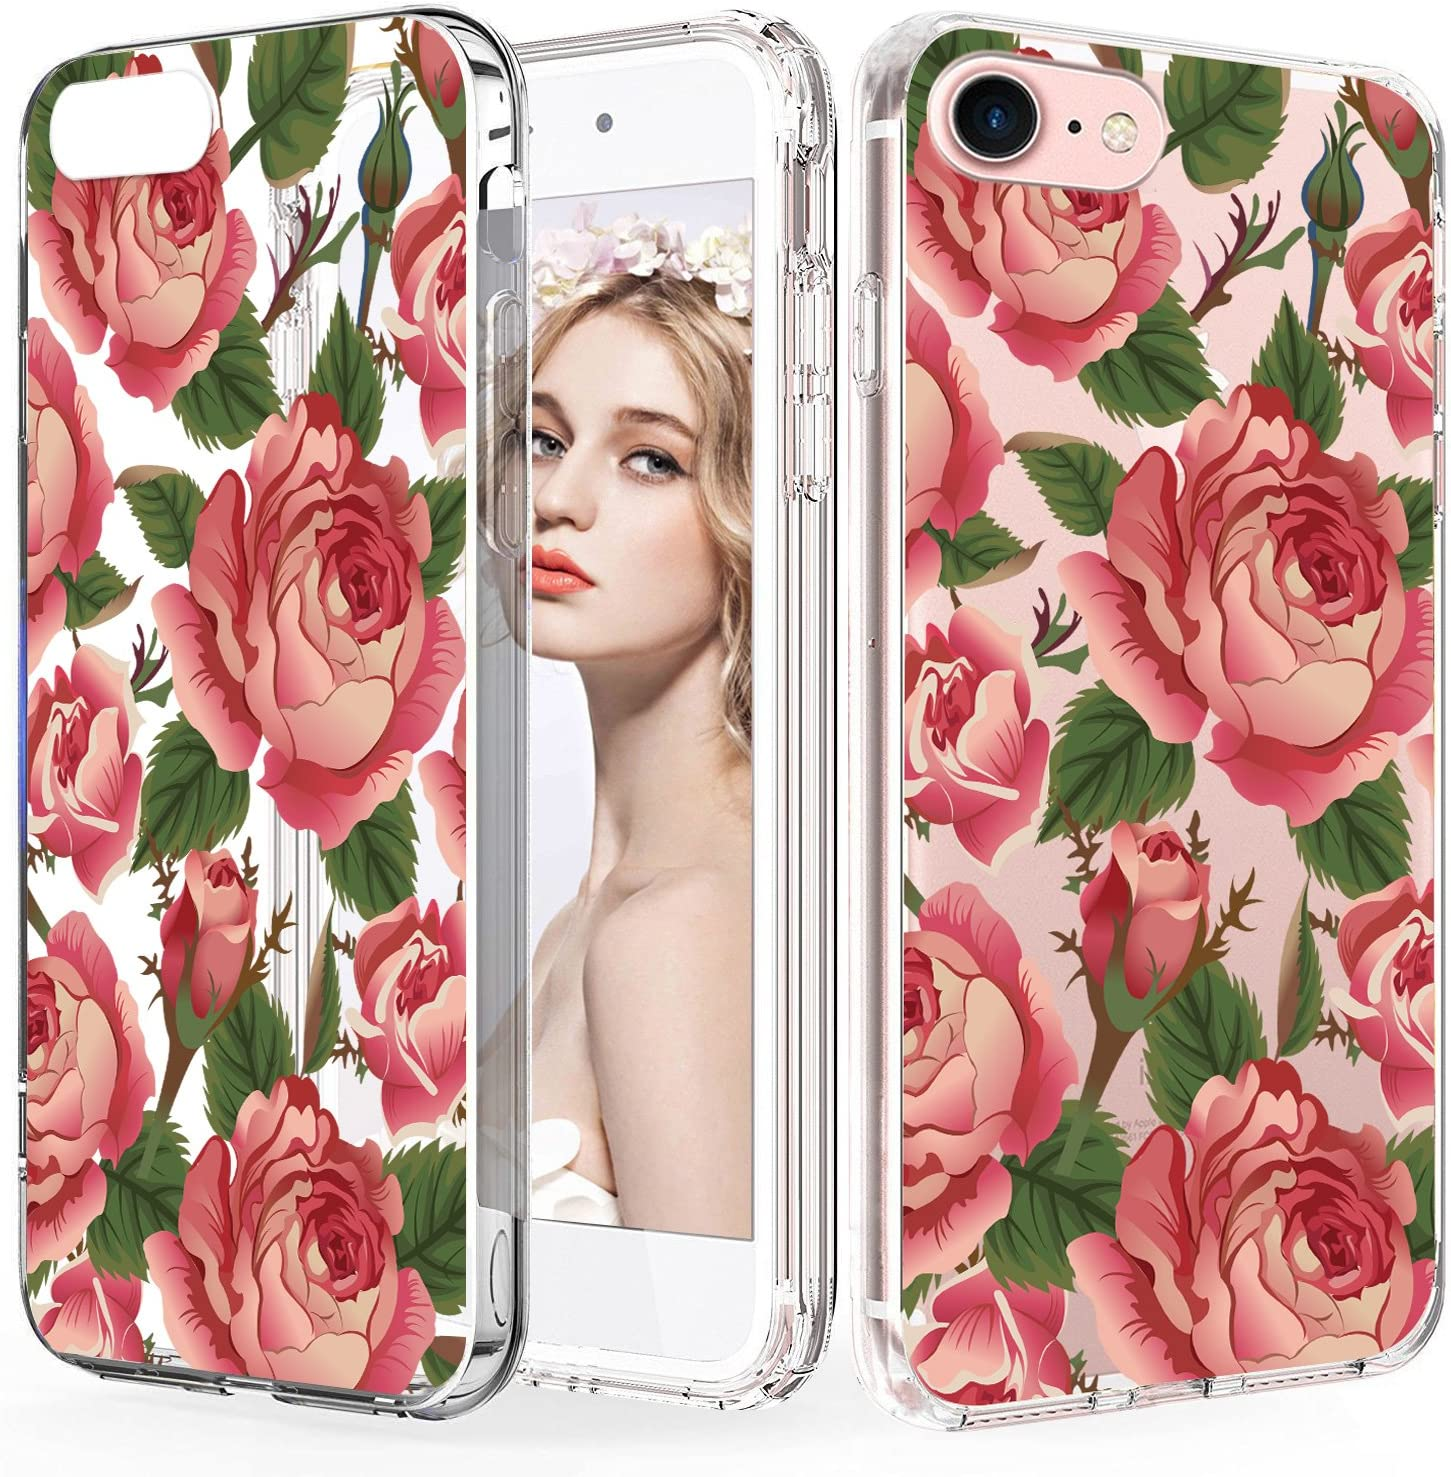 Imikoko iPhone 7 Case, iPhone 8 Case, iPhone SE 2020 Case, Flower Cute Pattern Protective Case Hard PC Back Case with Durable TPU Gel Bumper for iPhone 7/8/ SE 2020